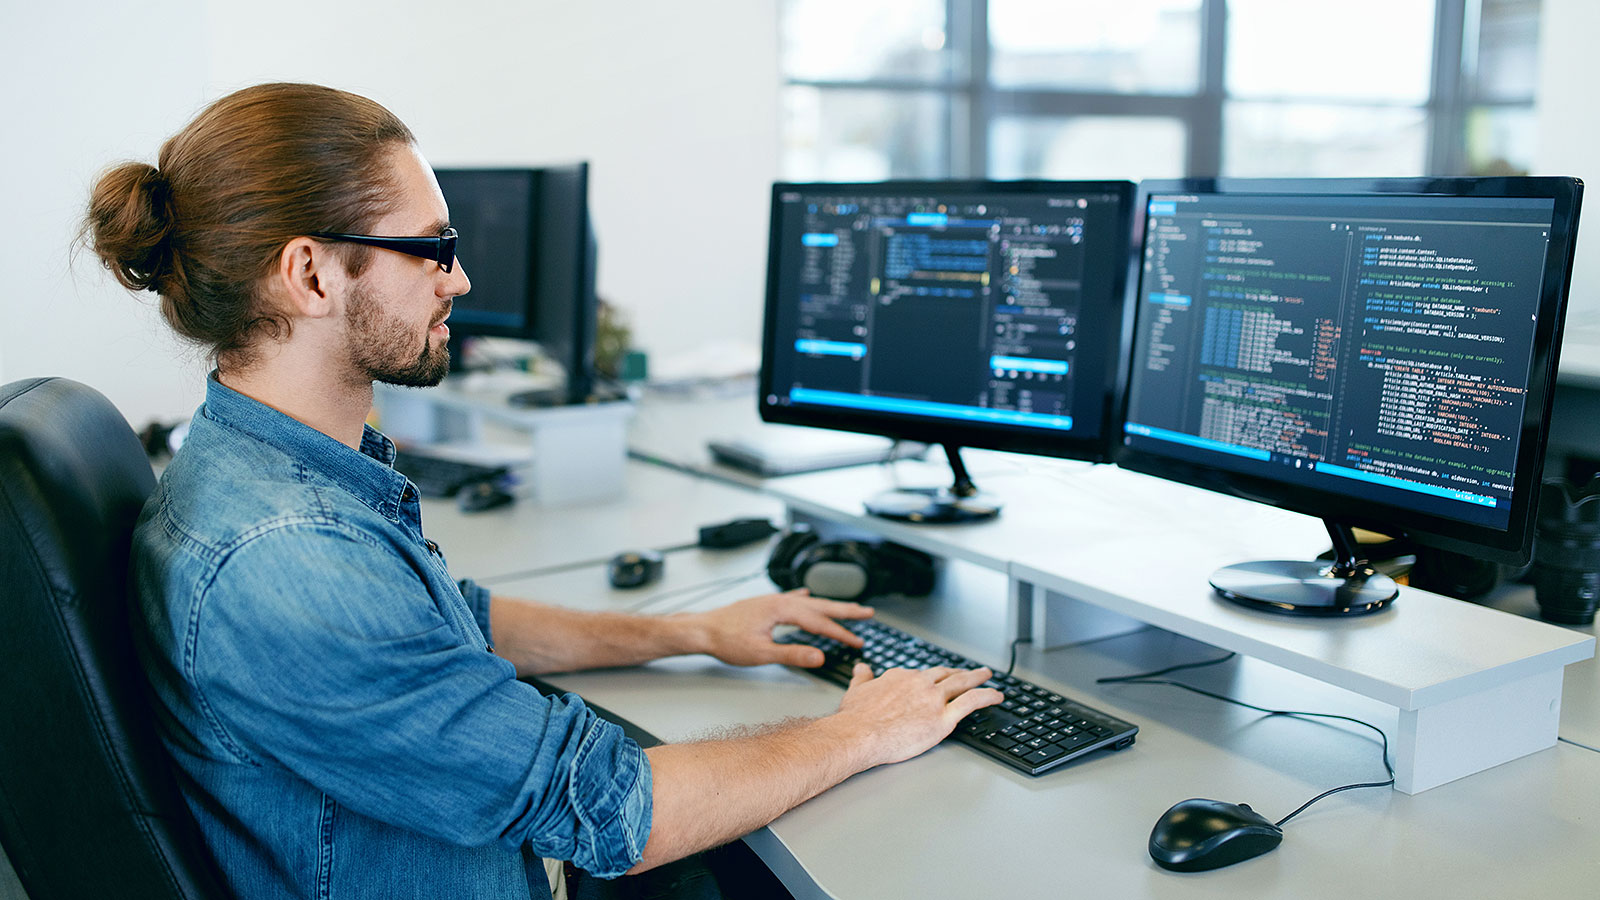 Advantages Of Working as A Software Engineer